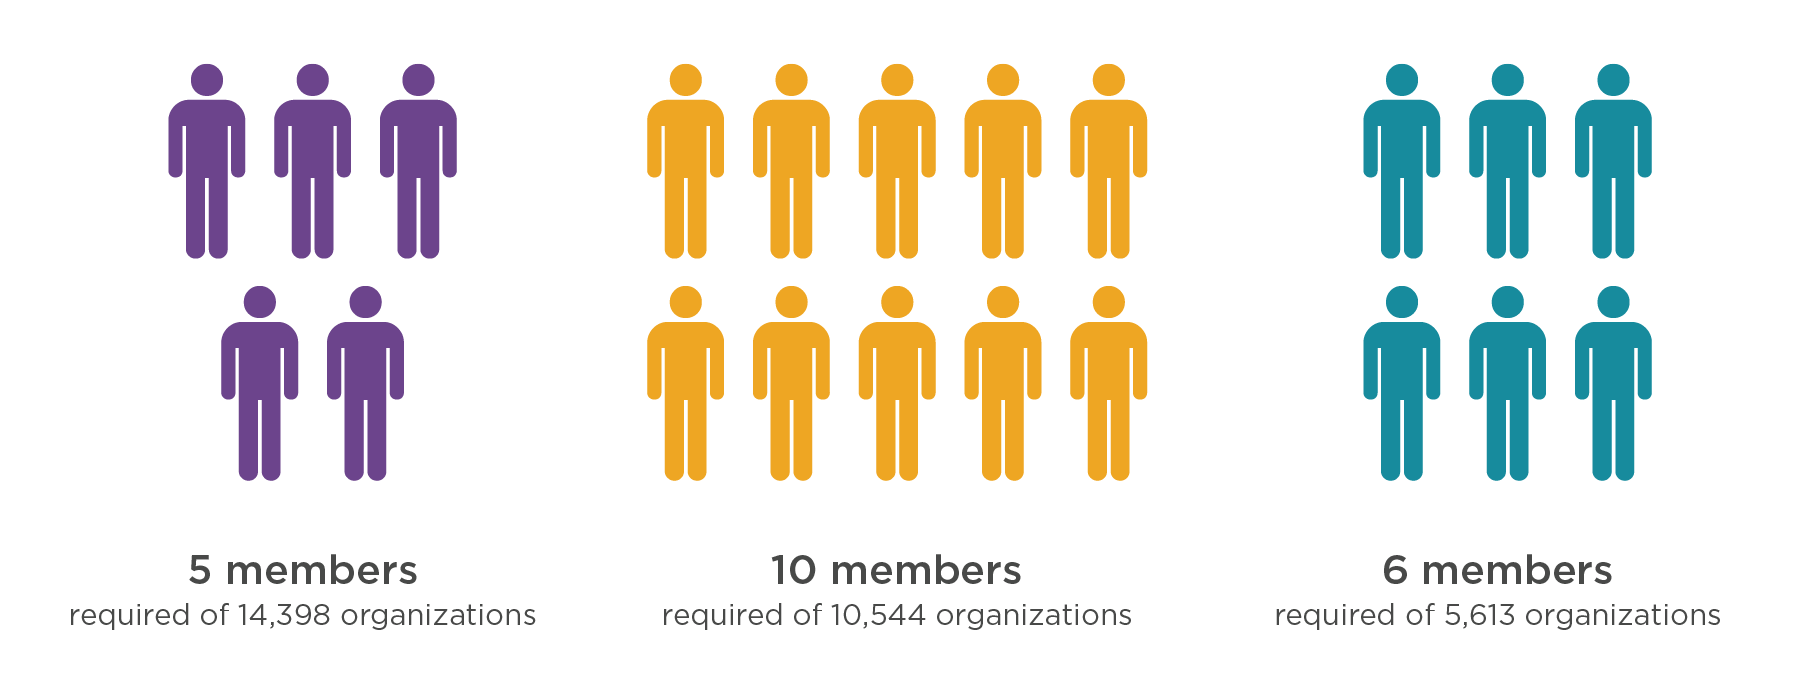 Number of members required per size of organization